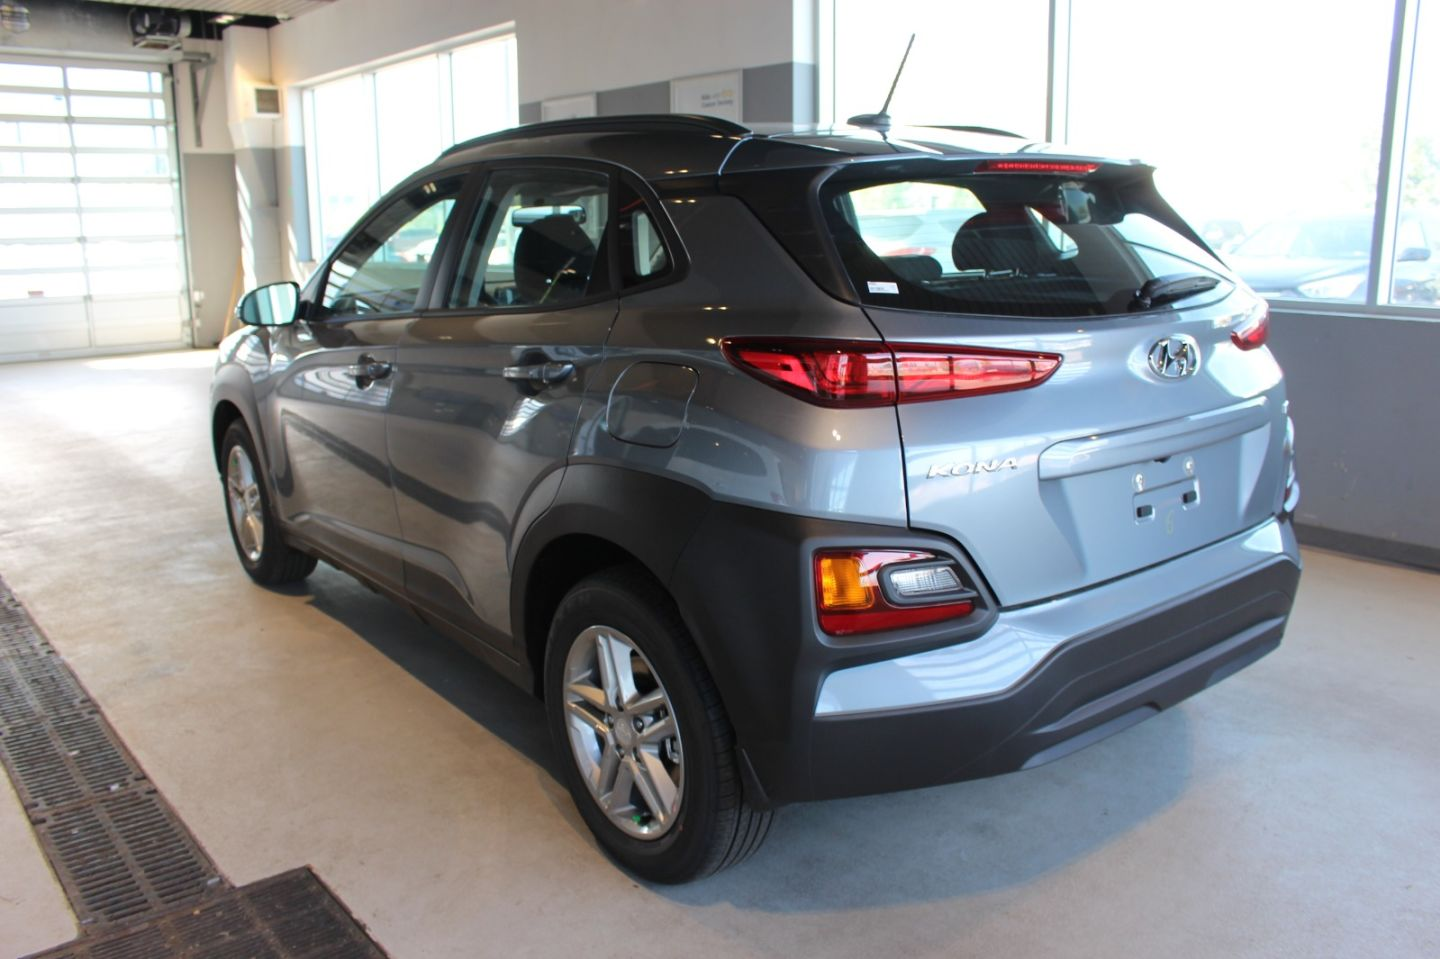 2021 Hyundai Kona Essential for sale in Spruce Grove, Alberta